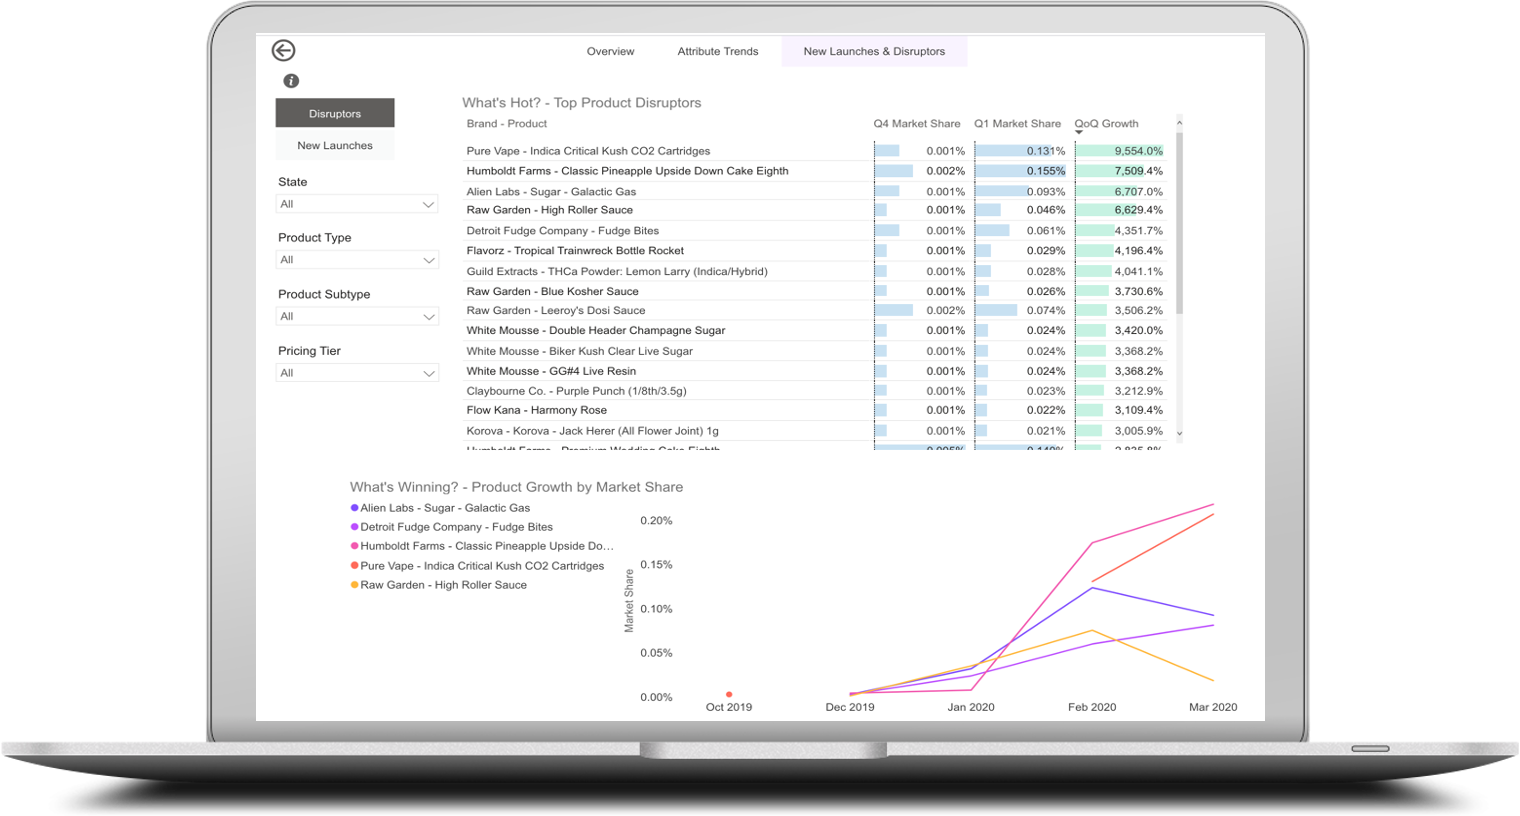 laptop image of Brightfield's innovation insights portal showing trending cannabis product attributes